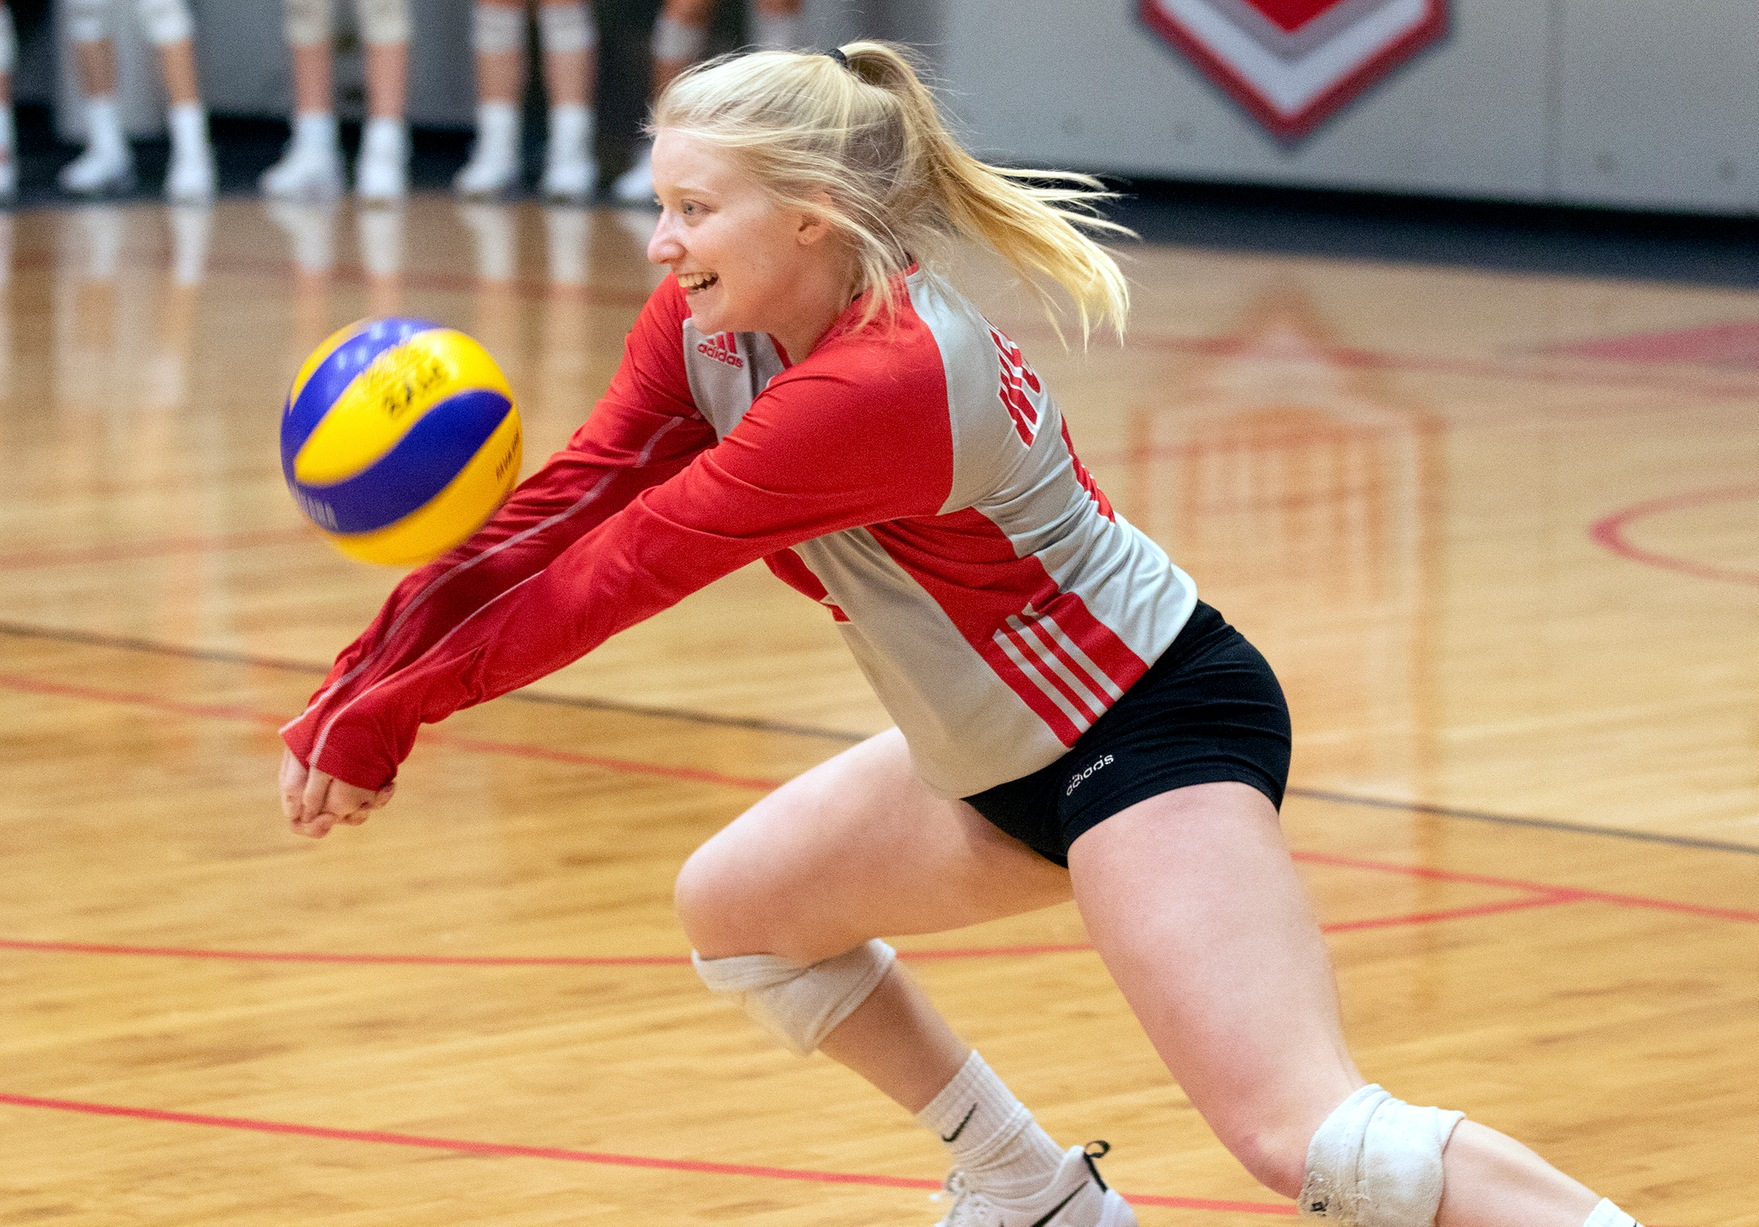 Madison Fyvie gets down to dig up a Regina attack during women's volleyball action, Saturday, Nov. 30, 2019. (David Larkins/Wesmen Athletics)